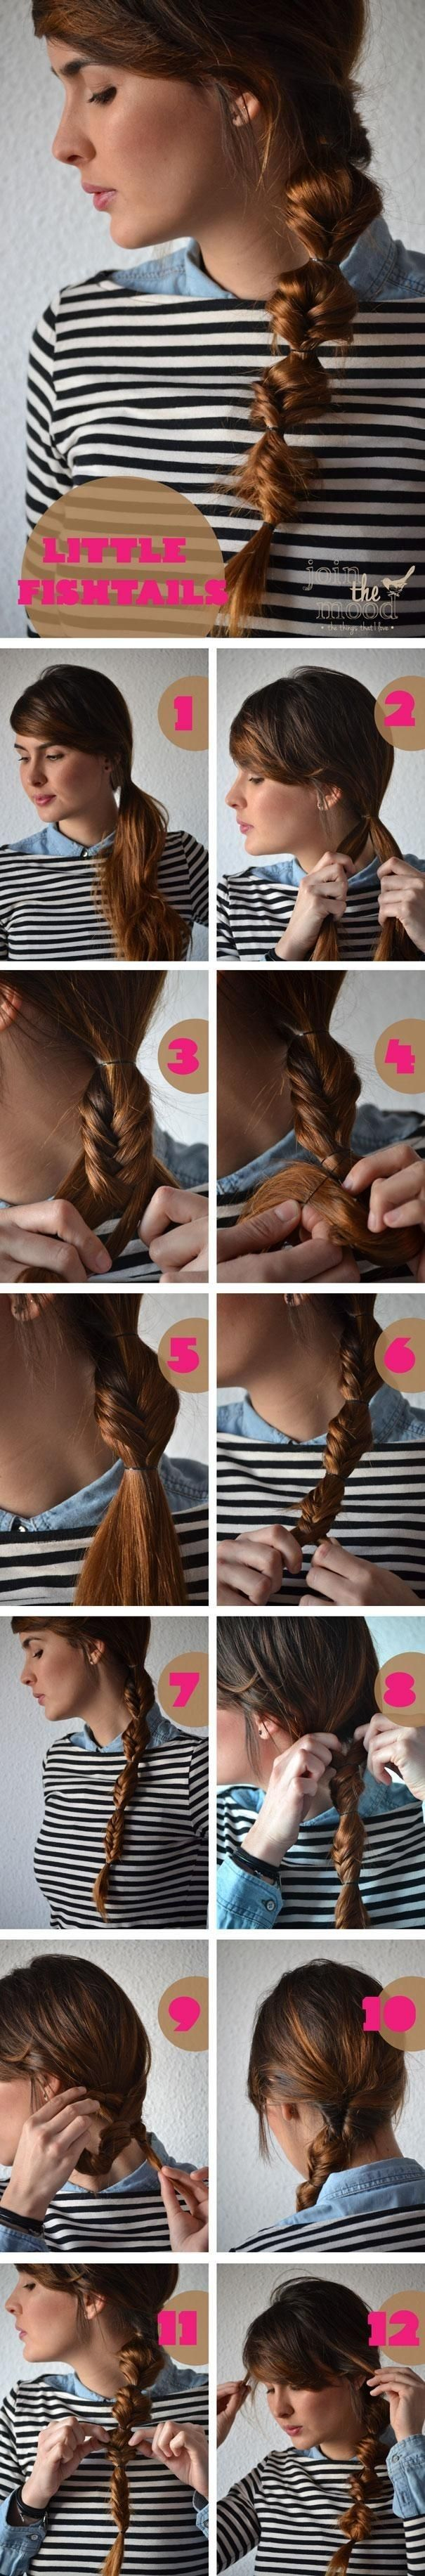 This is twisted braided hairstyle. It is effortless to recreate it. Create the air into a low ponytail at one side and divide it into two even parts. Braid the two parts one by one. Twist the finished braids tightly. Fix the hair ends with a clear elastic band.